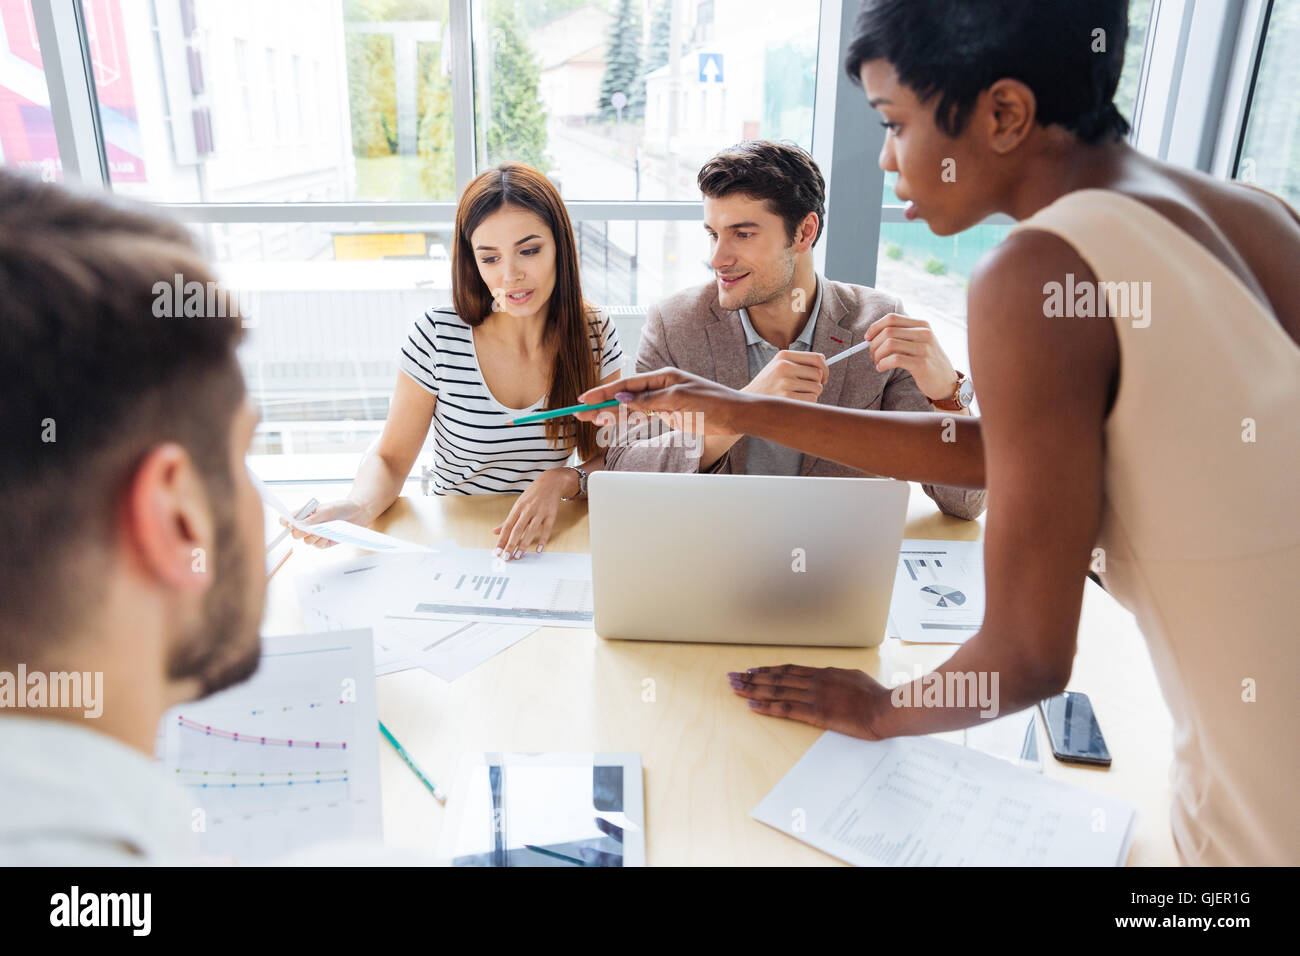 Multiethnic group of young business people preparing for presentation together in office - Stock Image